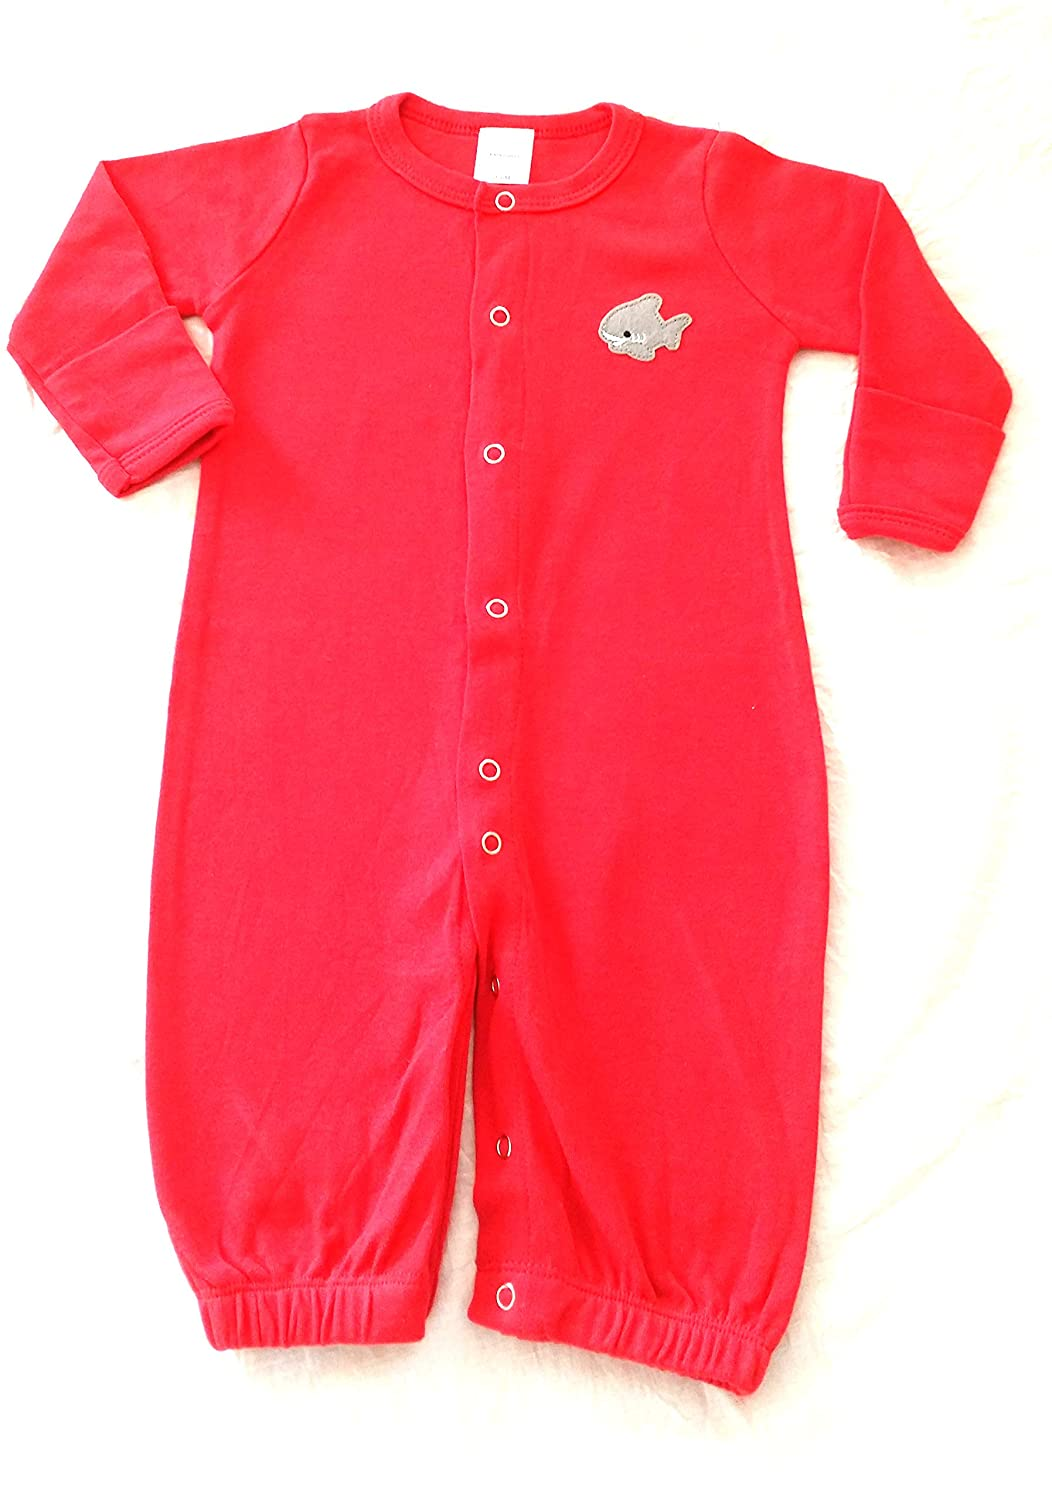 Snug Bub Convertible Night Gown to Footed Pajamas